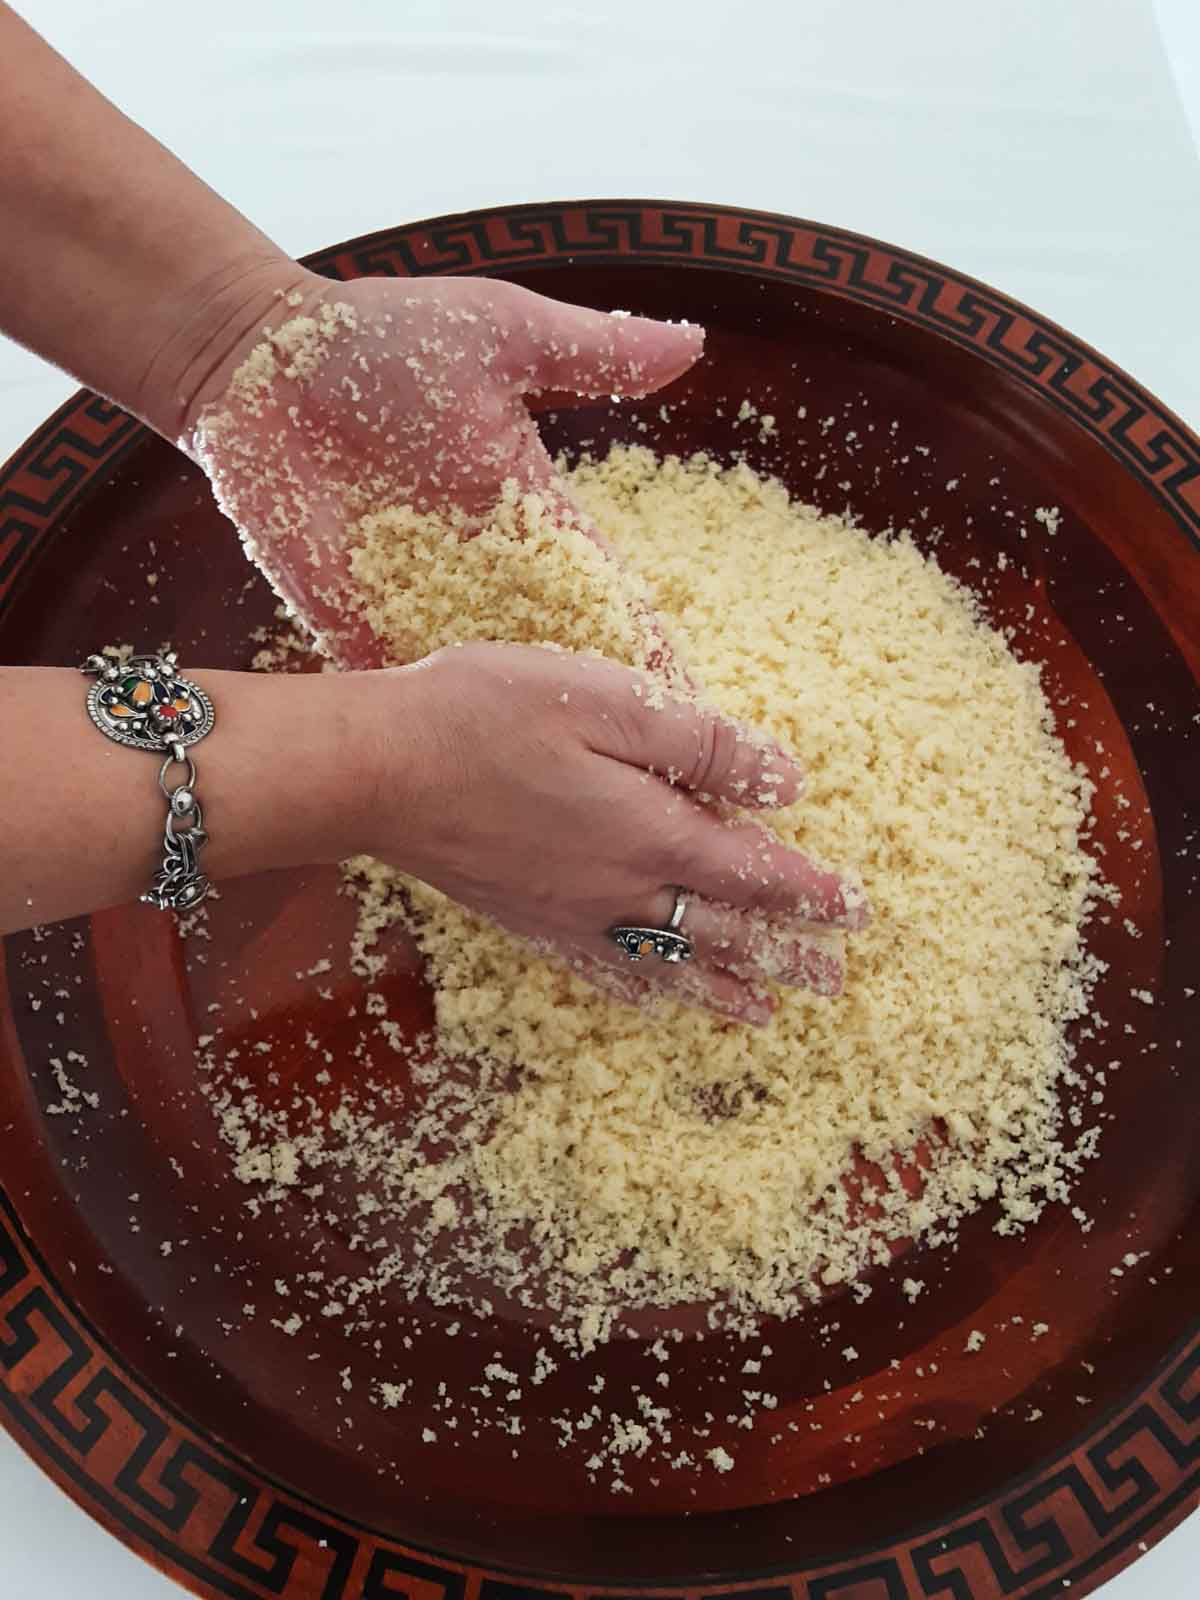 rubbing couscous between hands to separate out the grains